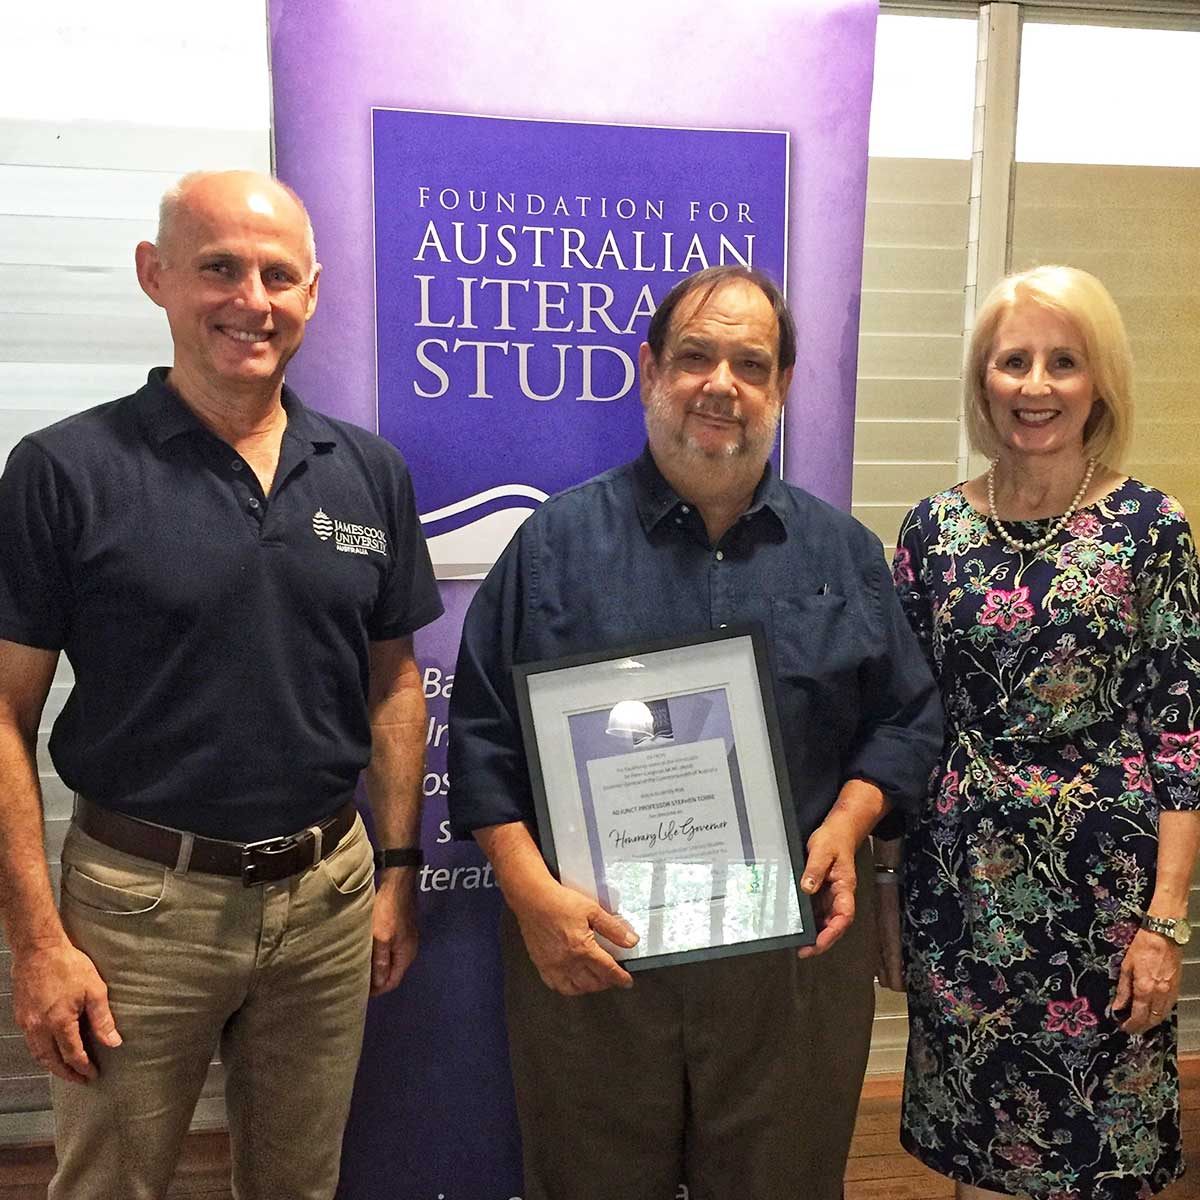 Adjunct Prof Stephen Torre receiving Life Governor certificate with Prof Richard Nile, Foundation Chair and Prof Sandra Harding, Foundation Deputy Chair